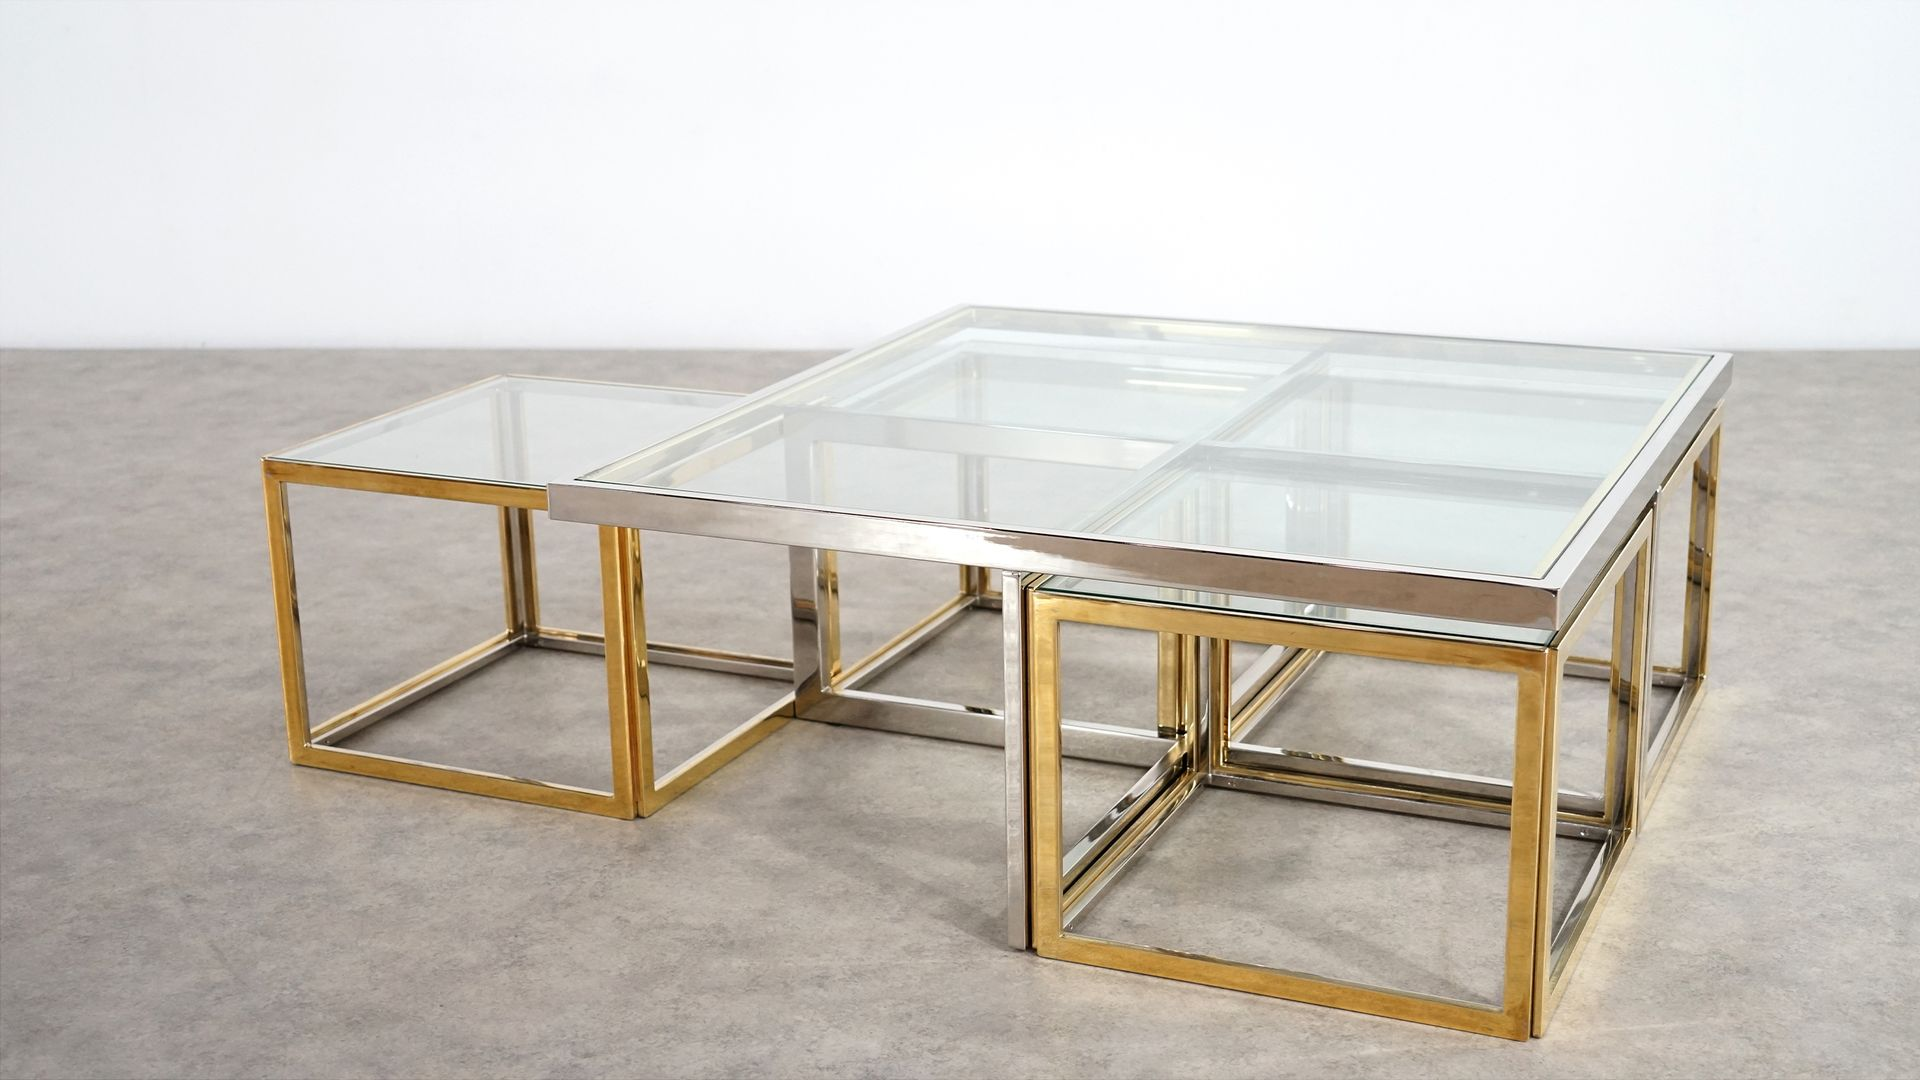 Vintage Coffee Table with Four Nesting Tables by Maison